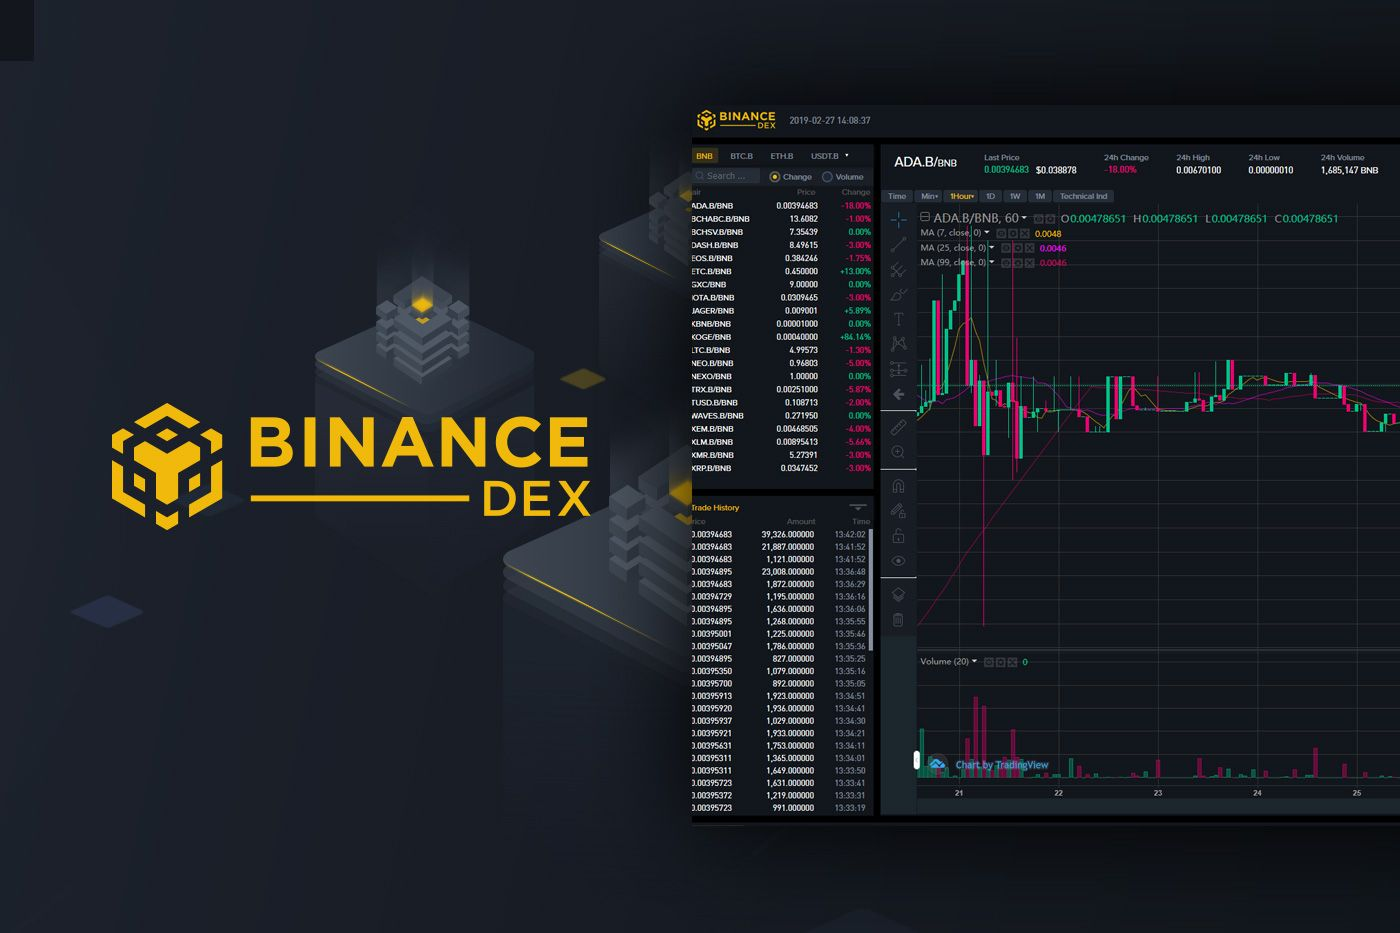 Binance Officially Absorbs CoinMarketCap in $400 million deal